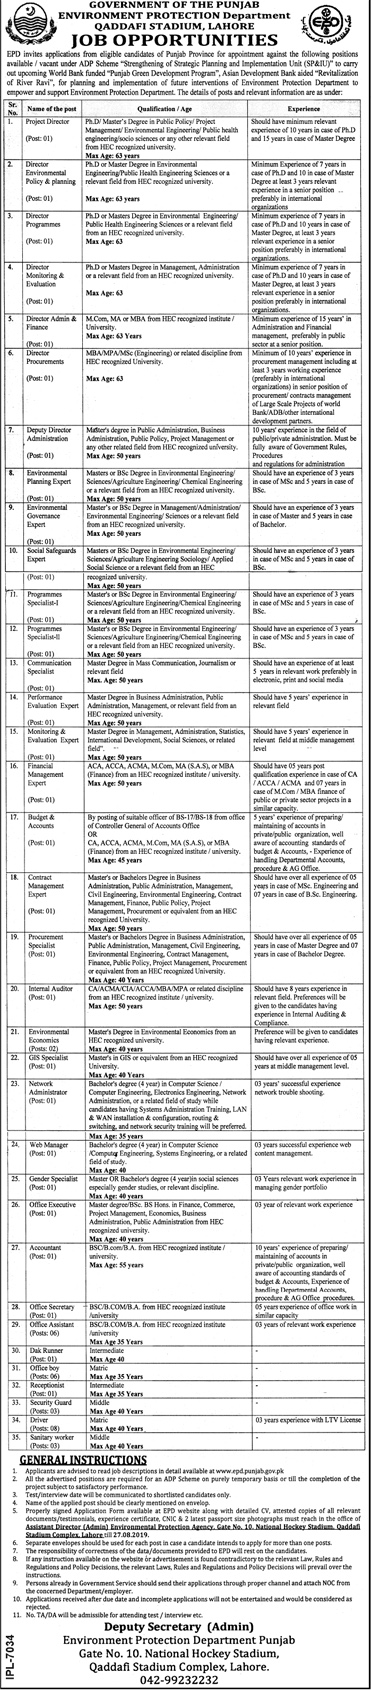 Environment Protection Department Punjab Lahore Jobs 2019 Career Offers